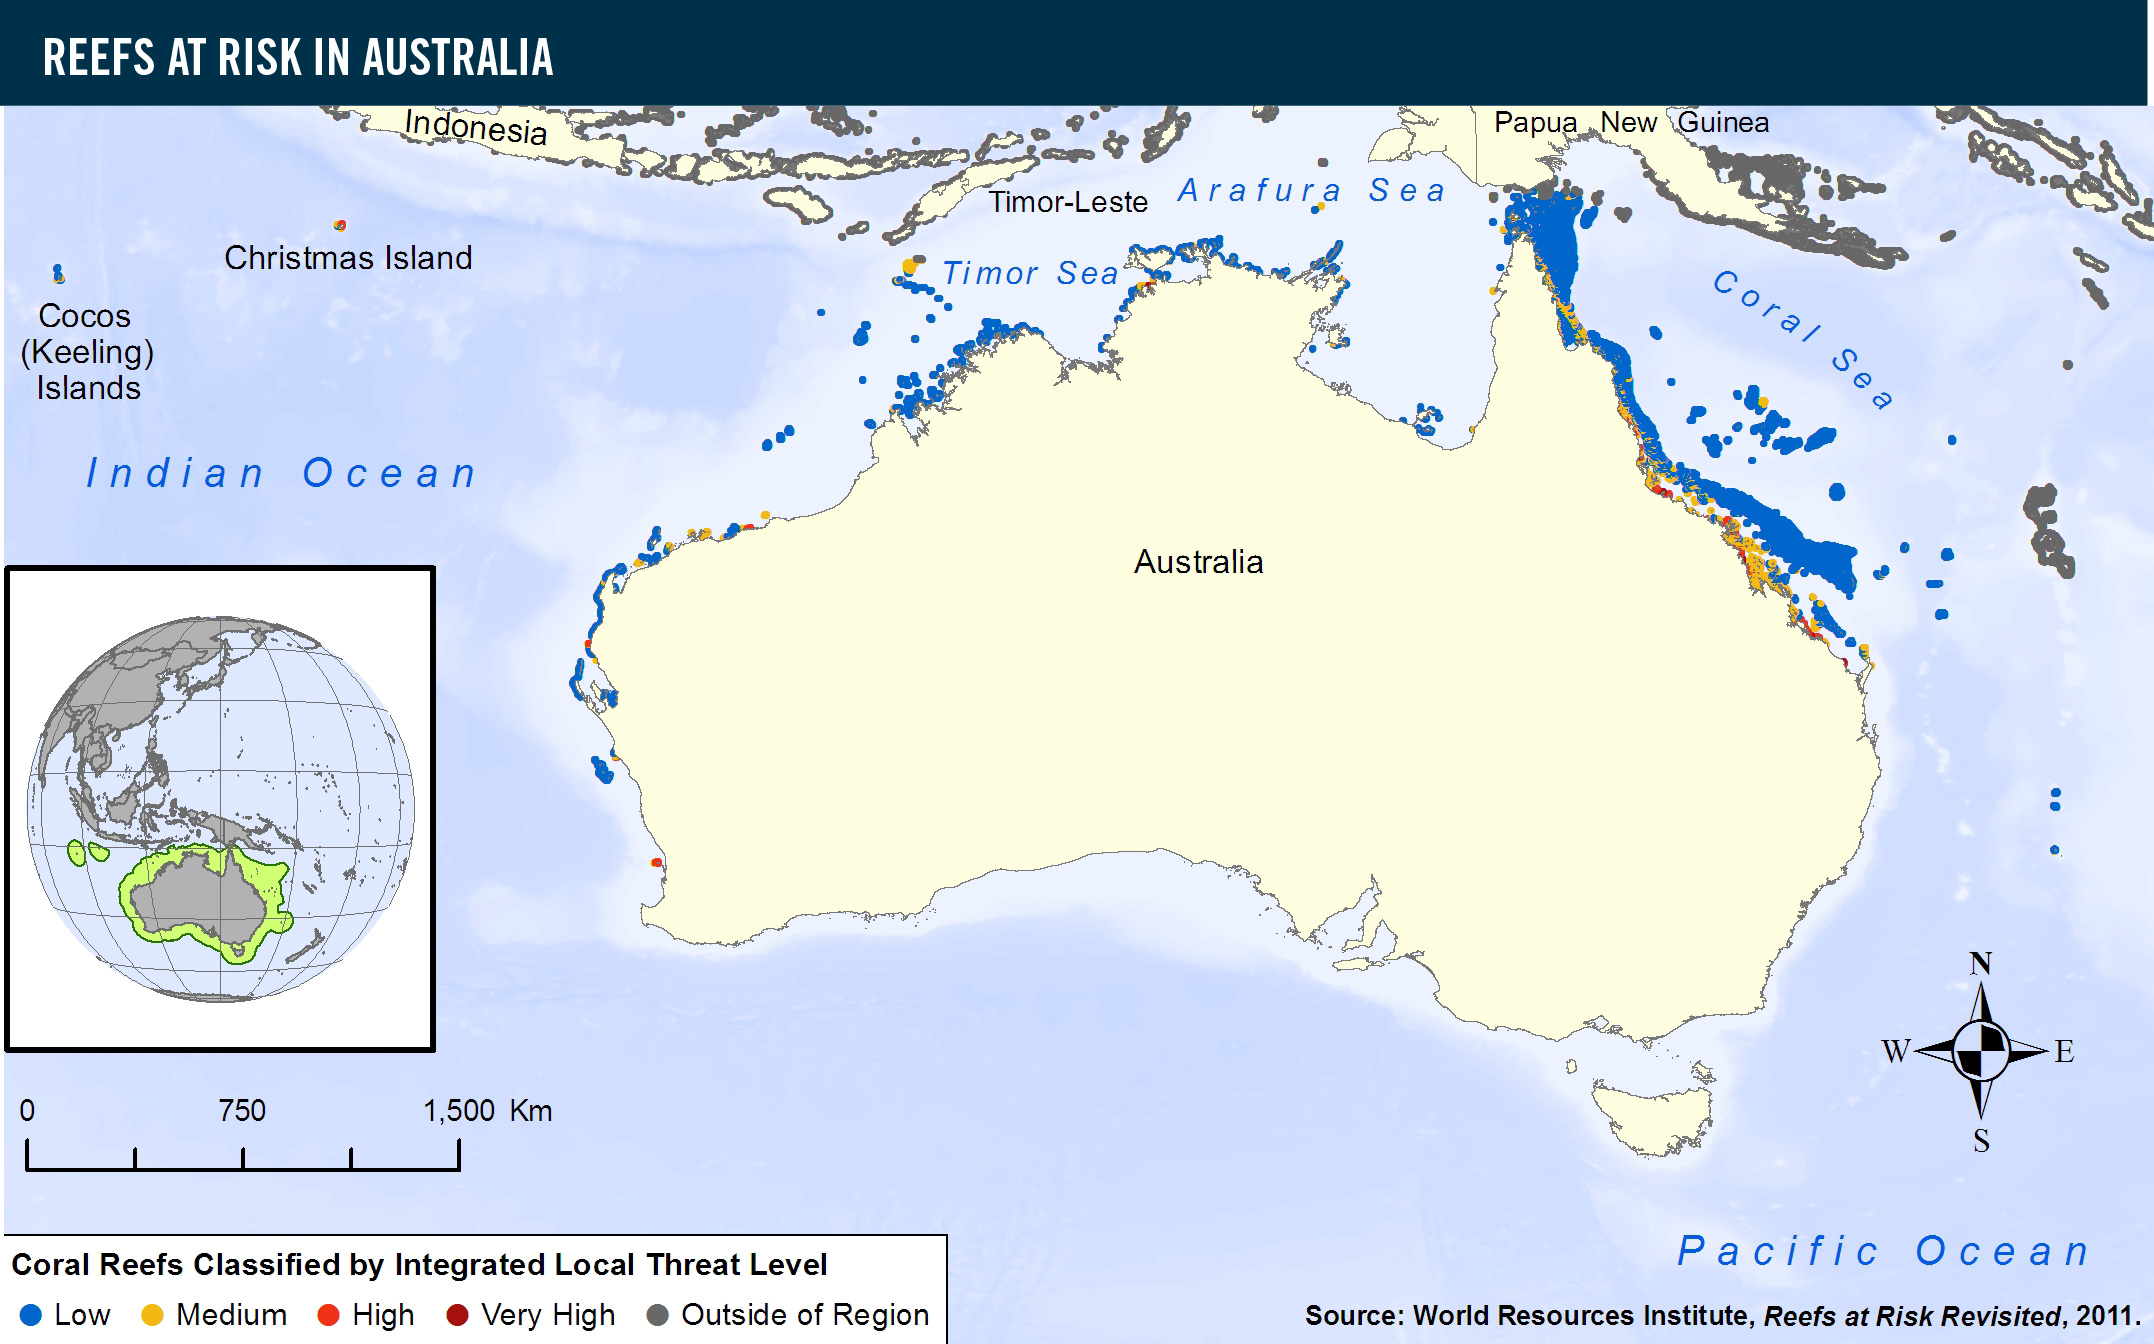 Reefs at Risk in Australia | World Resources Institute